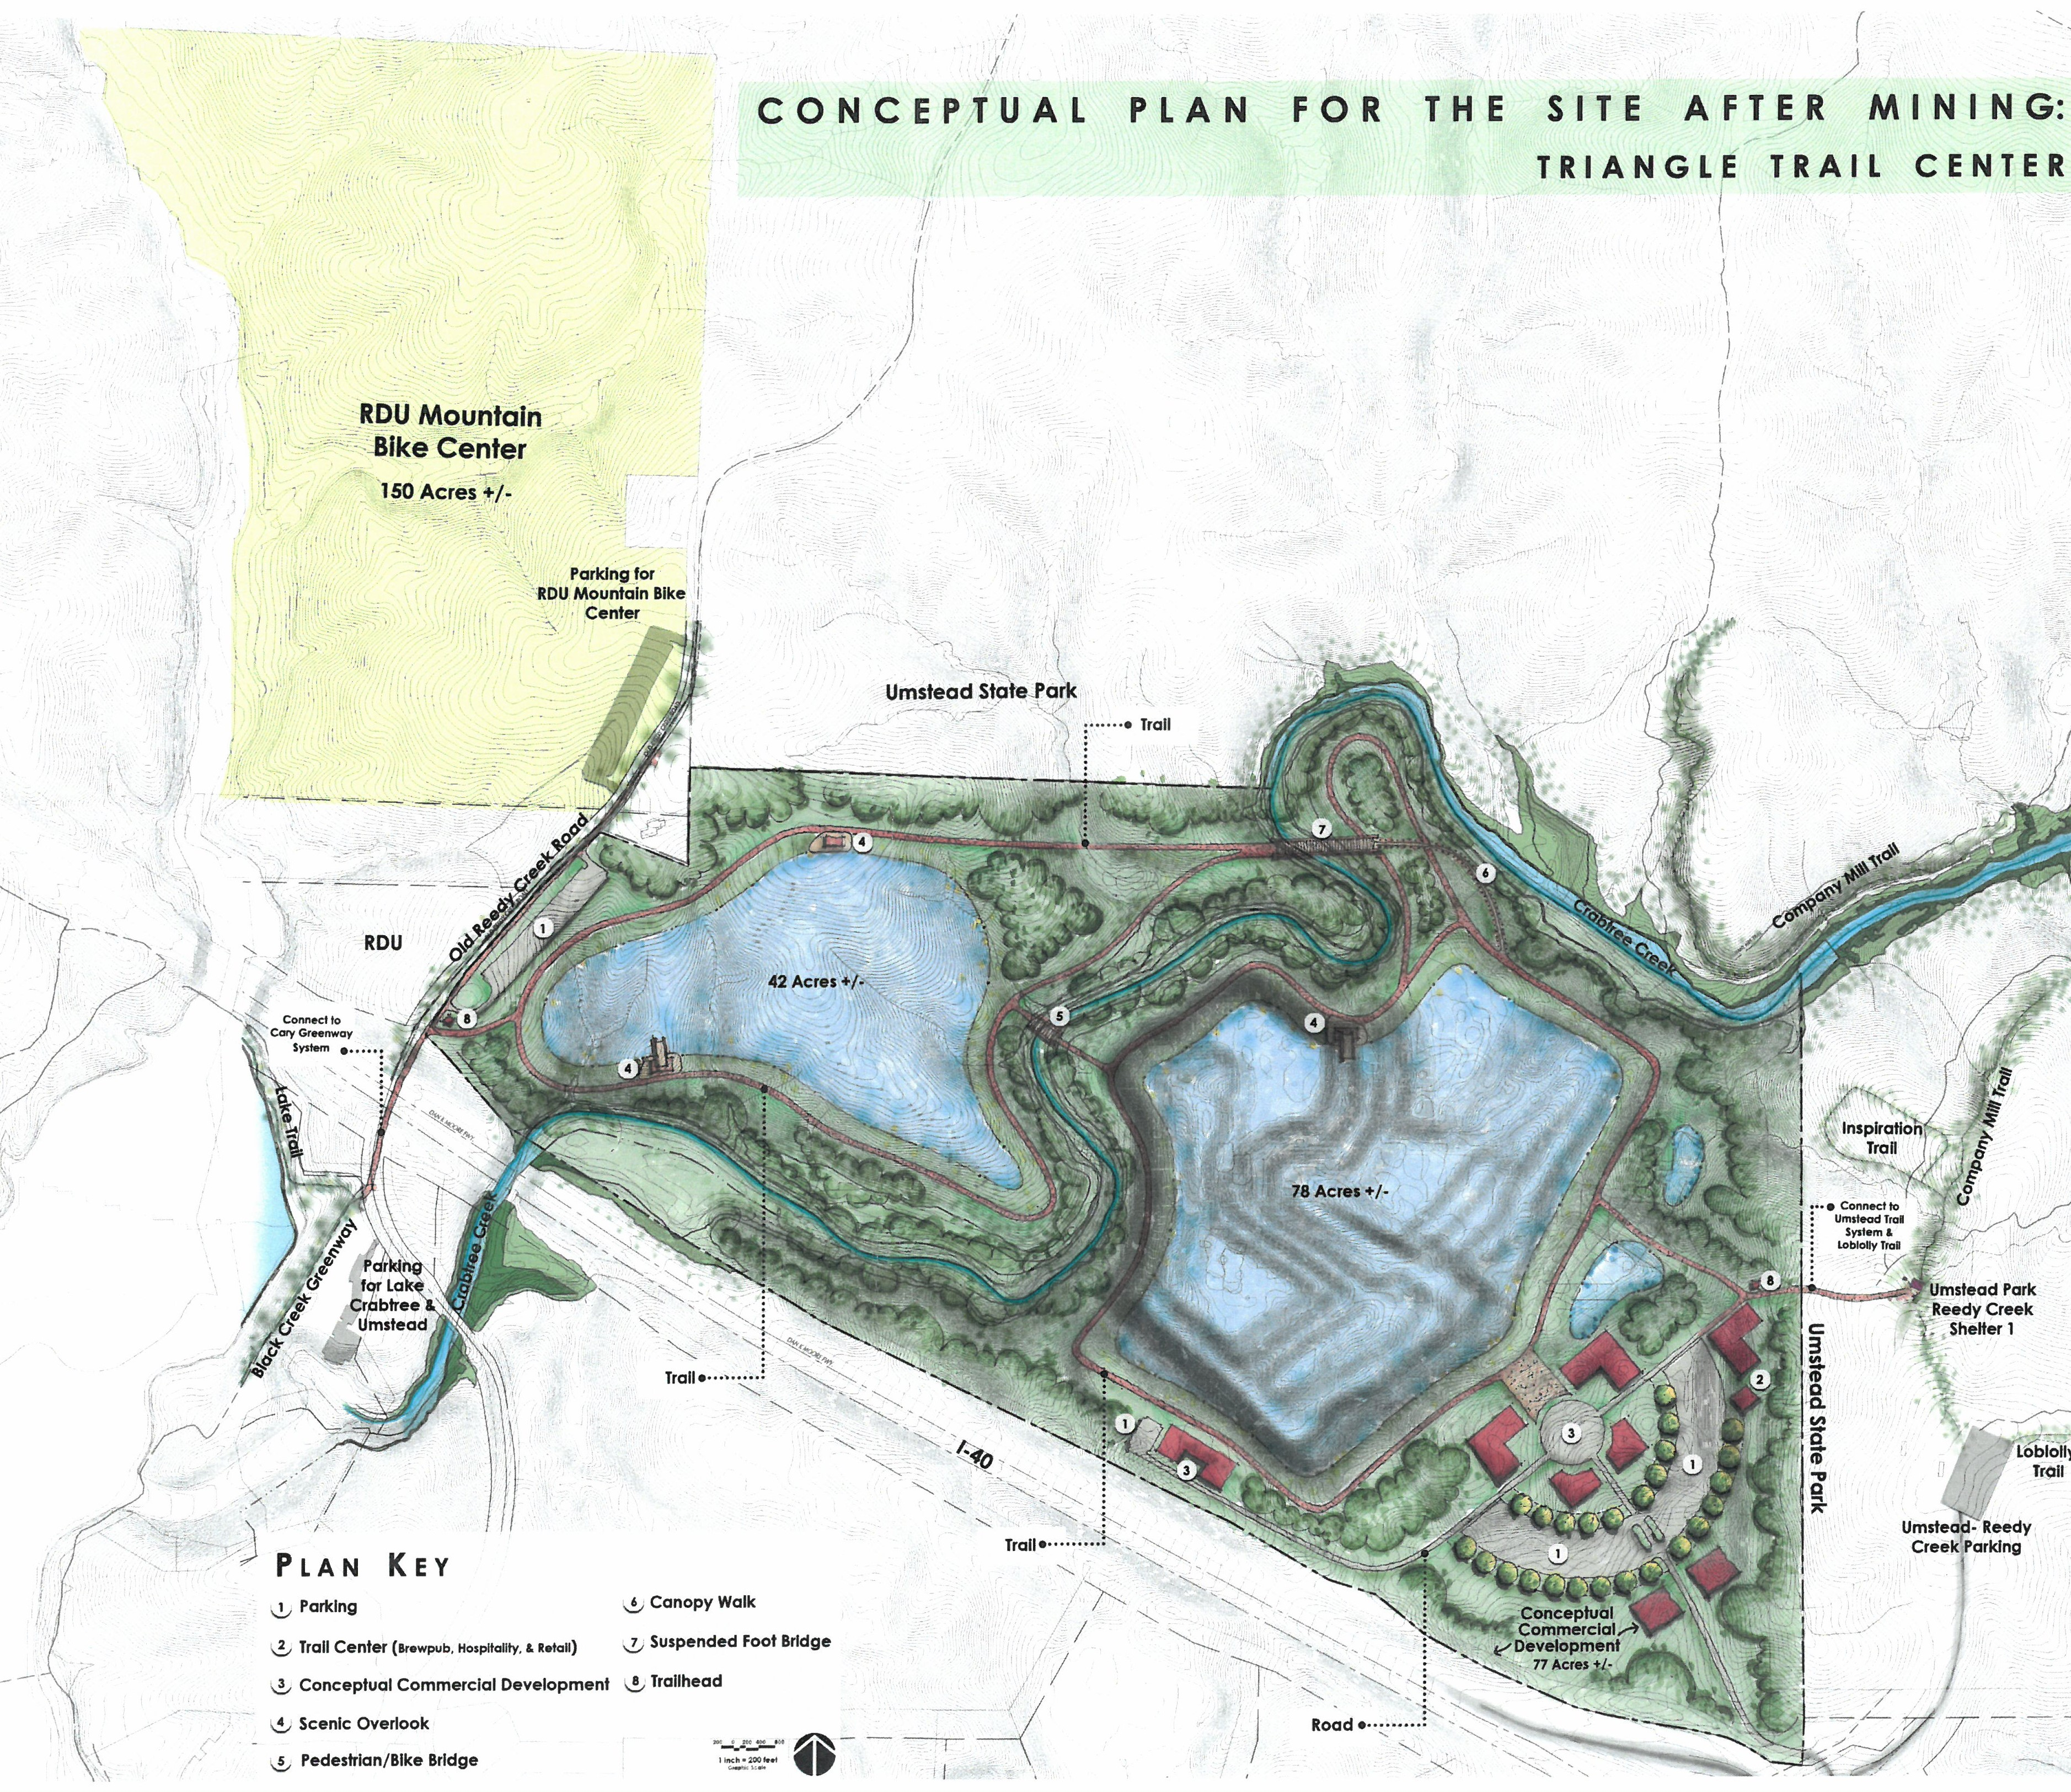 Approval Of Wake Stone Corporation Lease To Provide Significant Recreational And Economic Benefits For The Triangle